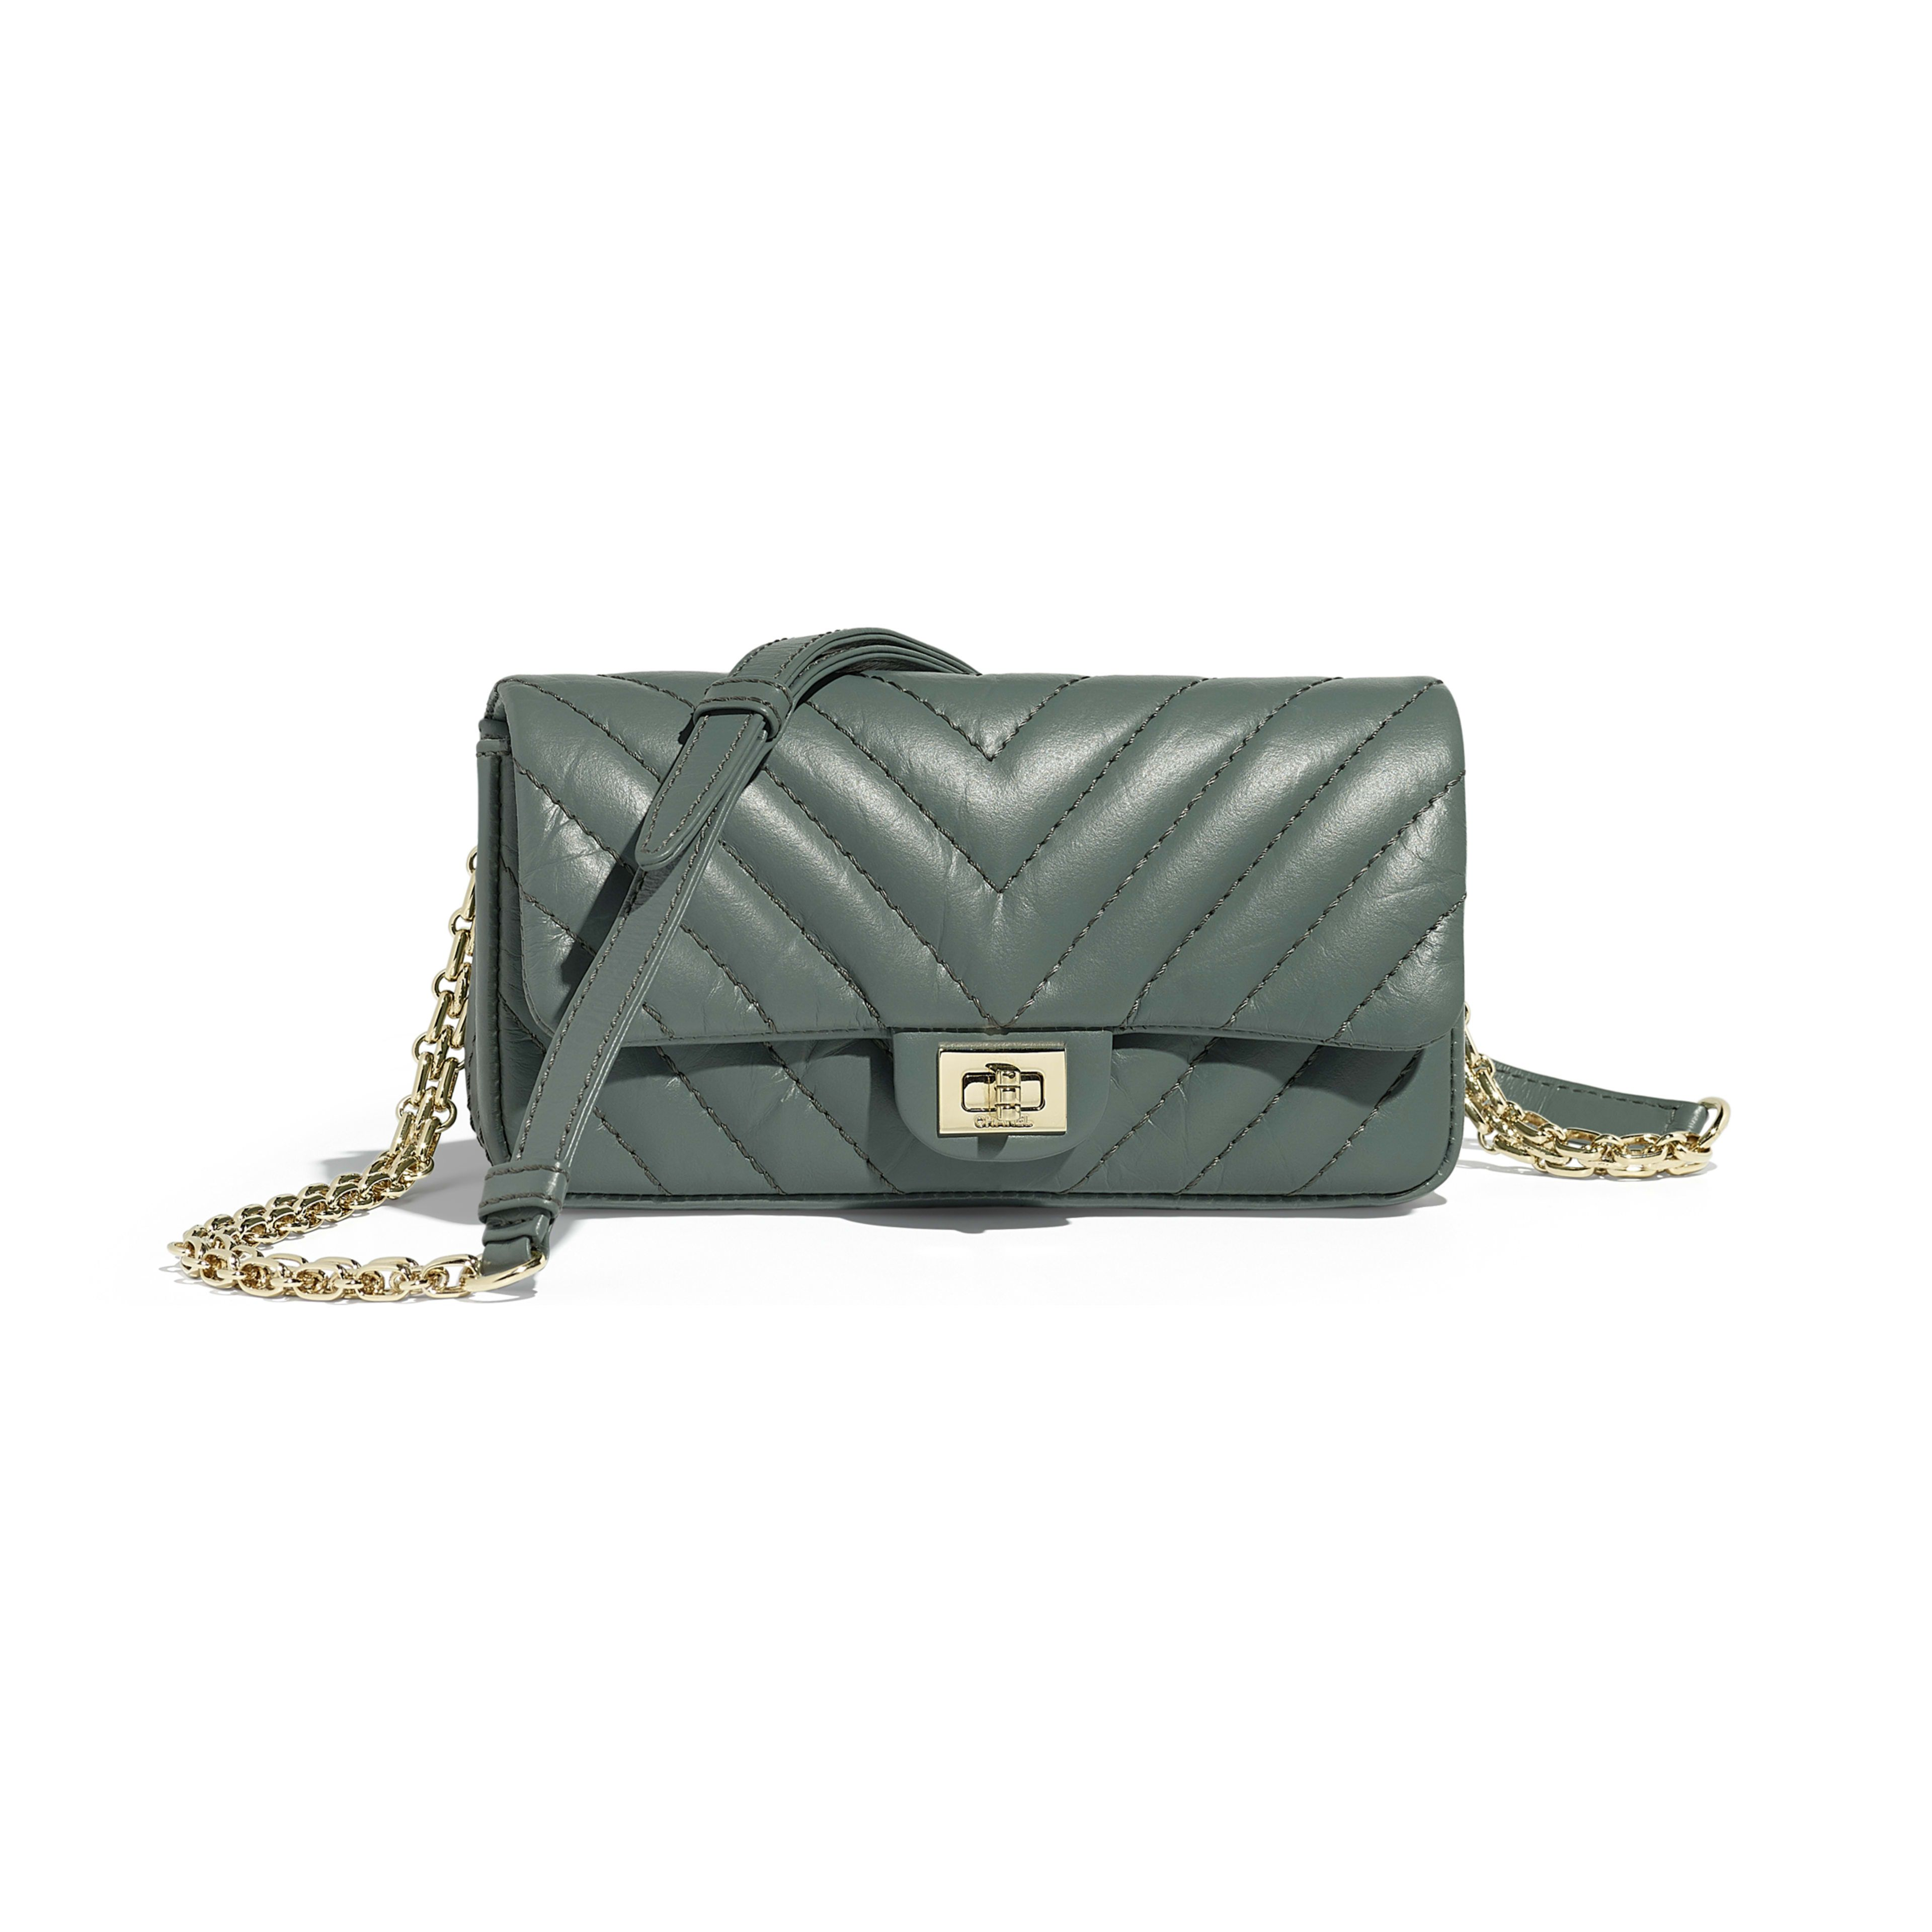 884843142c724b Waist Bag - Green - Aged Calfskin & Gold-Tone Metal - Default view - see  full sized version